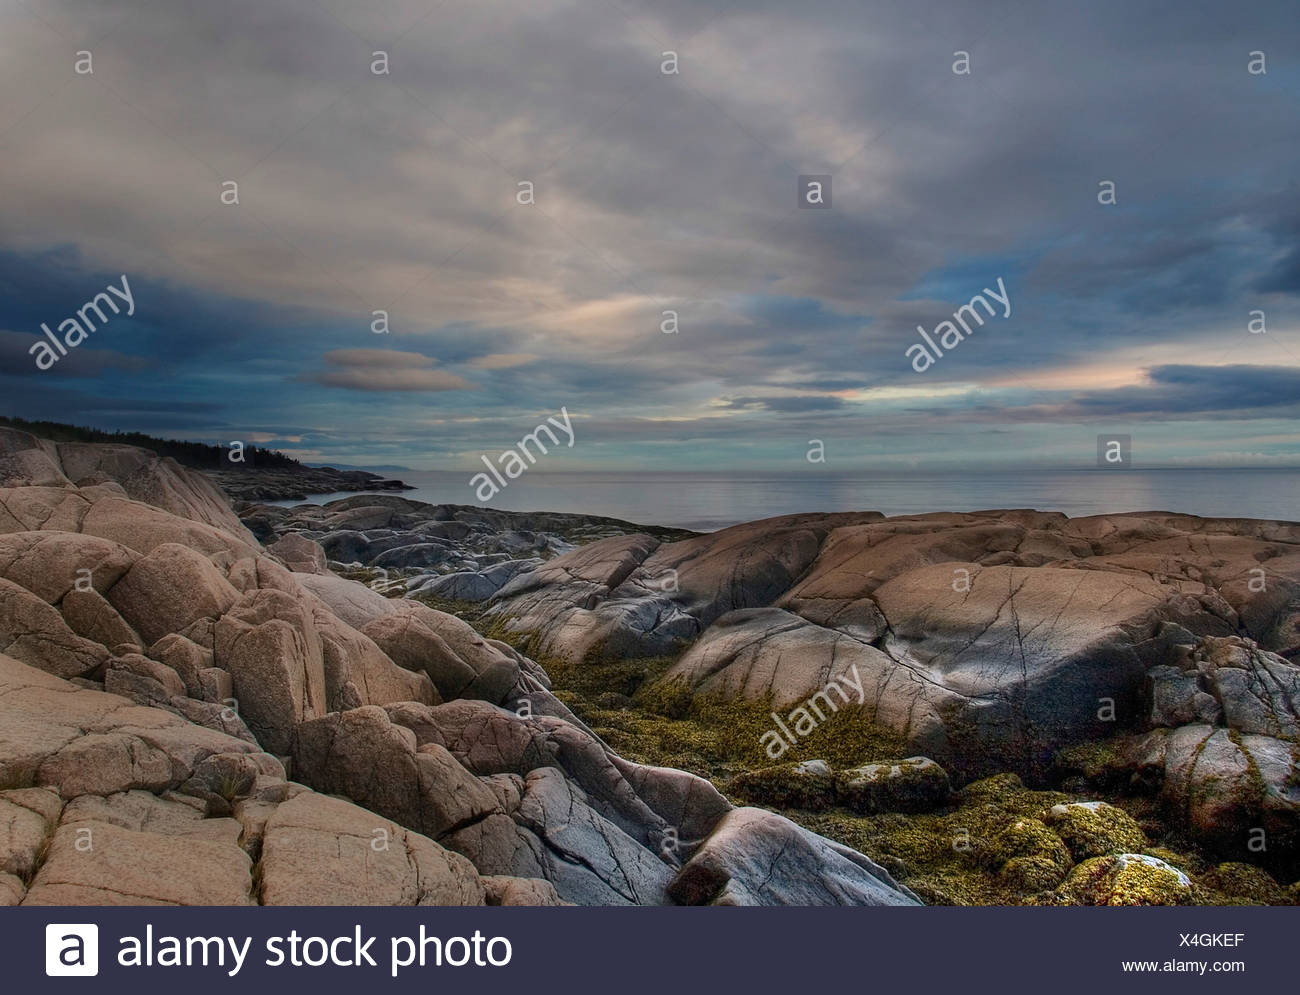 A rocky foreshore - Stock Image